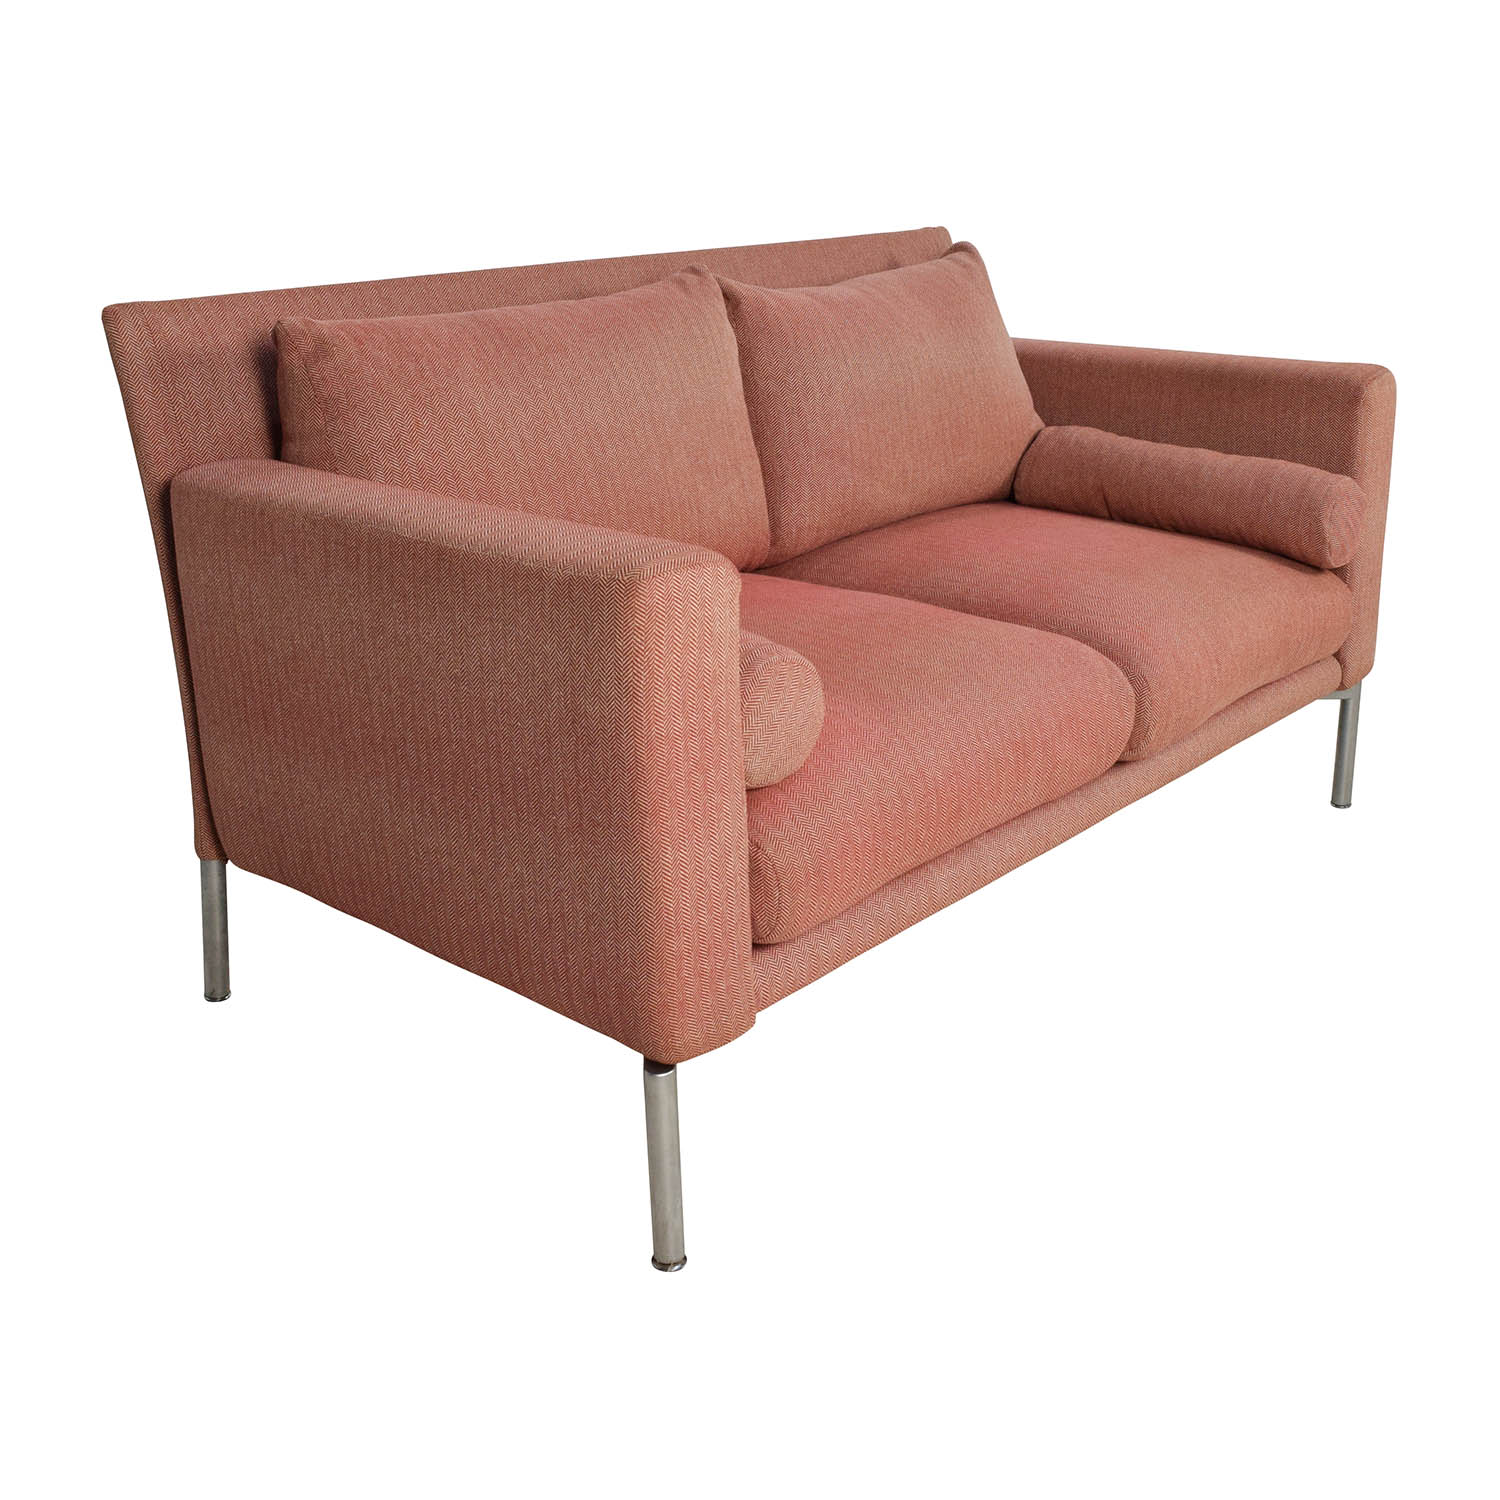 Remarkable 90 Off Walter Knoll Walter Knoll Jason 390 Convertible Covertible Sofa Sofas Unemploymentrelief Wooden Chair Designs For Living Room Unemploymentrelieforg